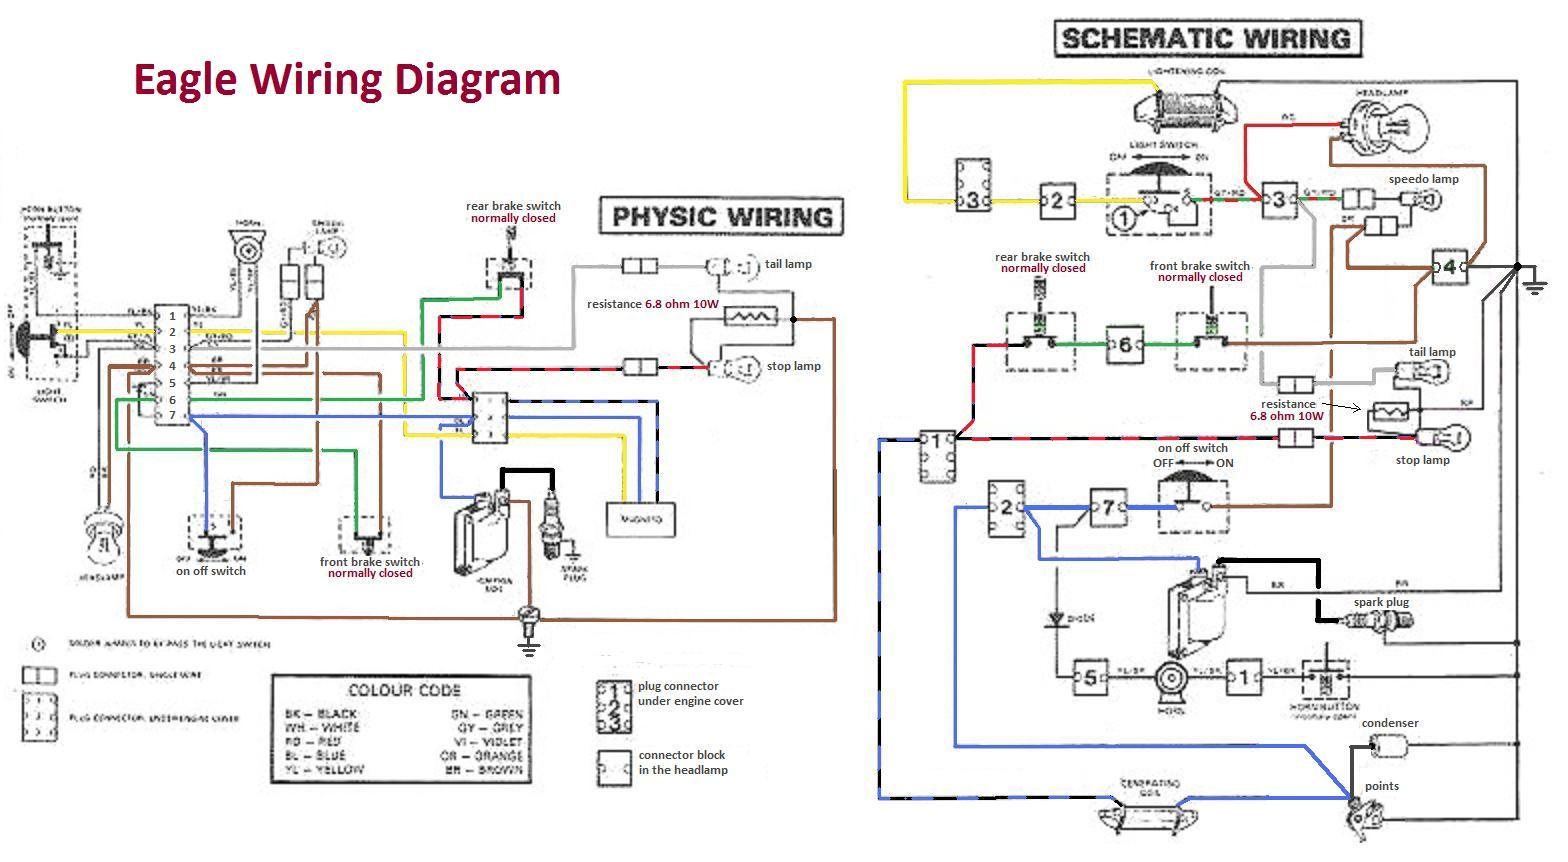 DIAGRAM] Cushman Eagle Wiring Diagram FULL Version HD Quality Wiring Diagram  - NCWIRING.FUTURCELL.ITBest Diagram Database - FuturCell.it